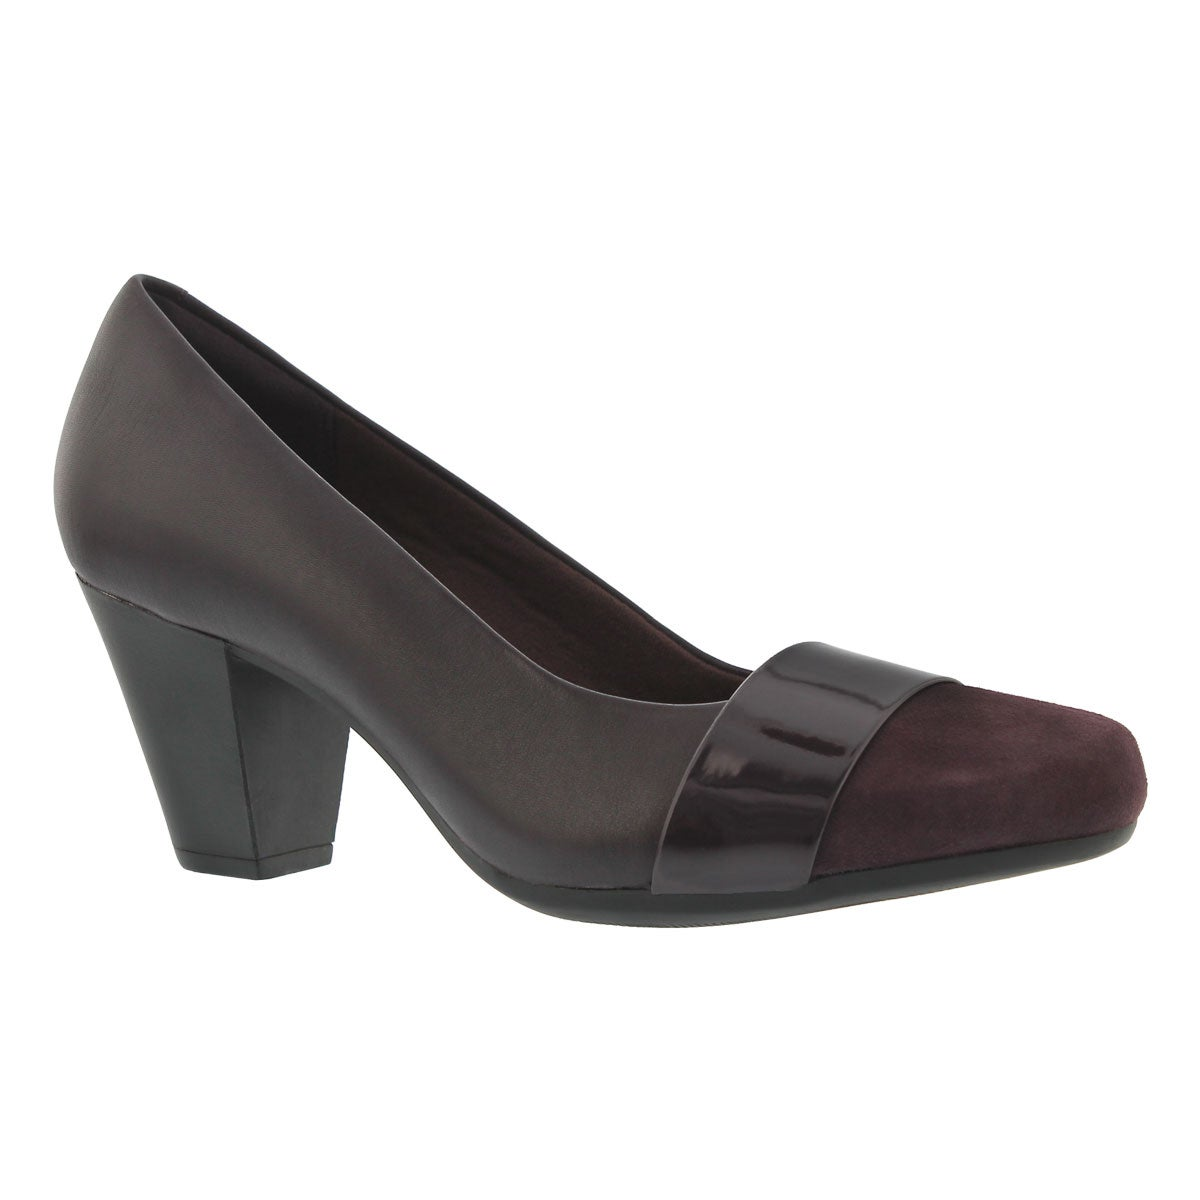 Women's GARNIT LUCIA aubergine dress heels